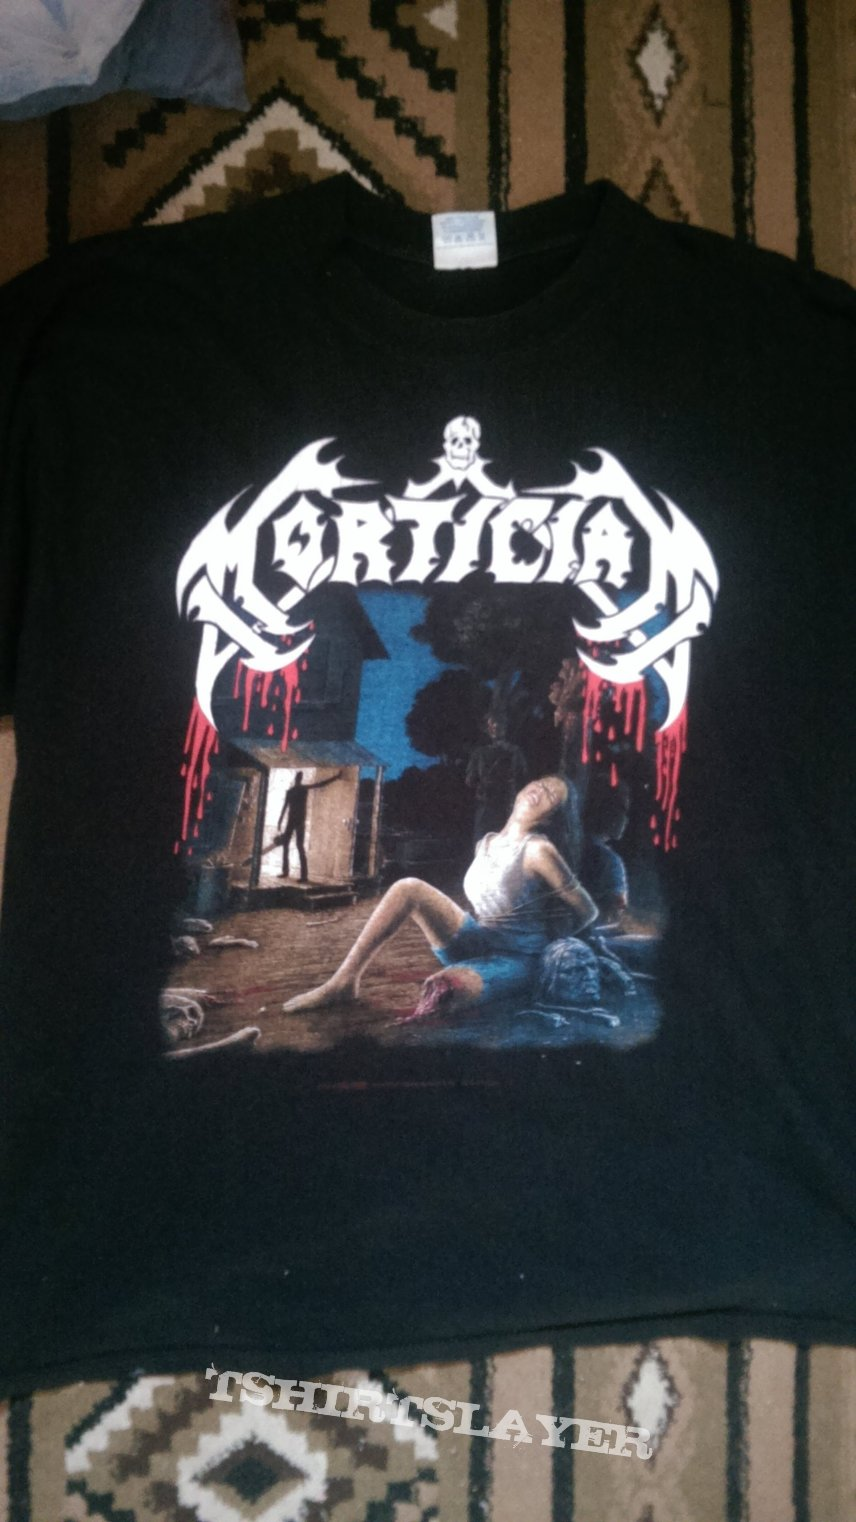 Mortician - Chainsaw dismemberment